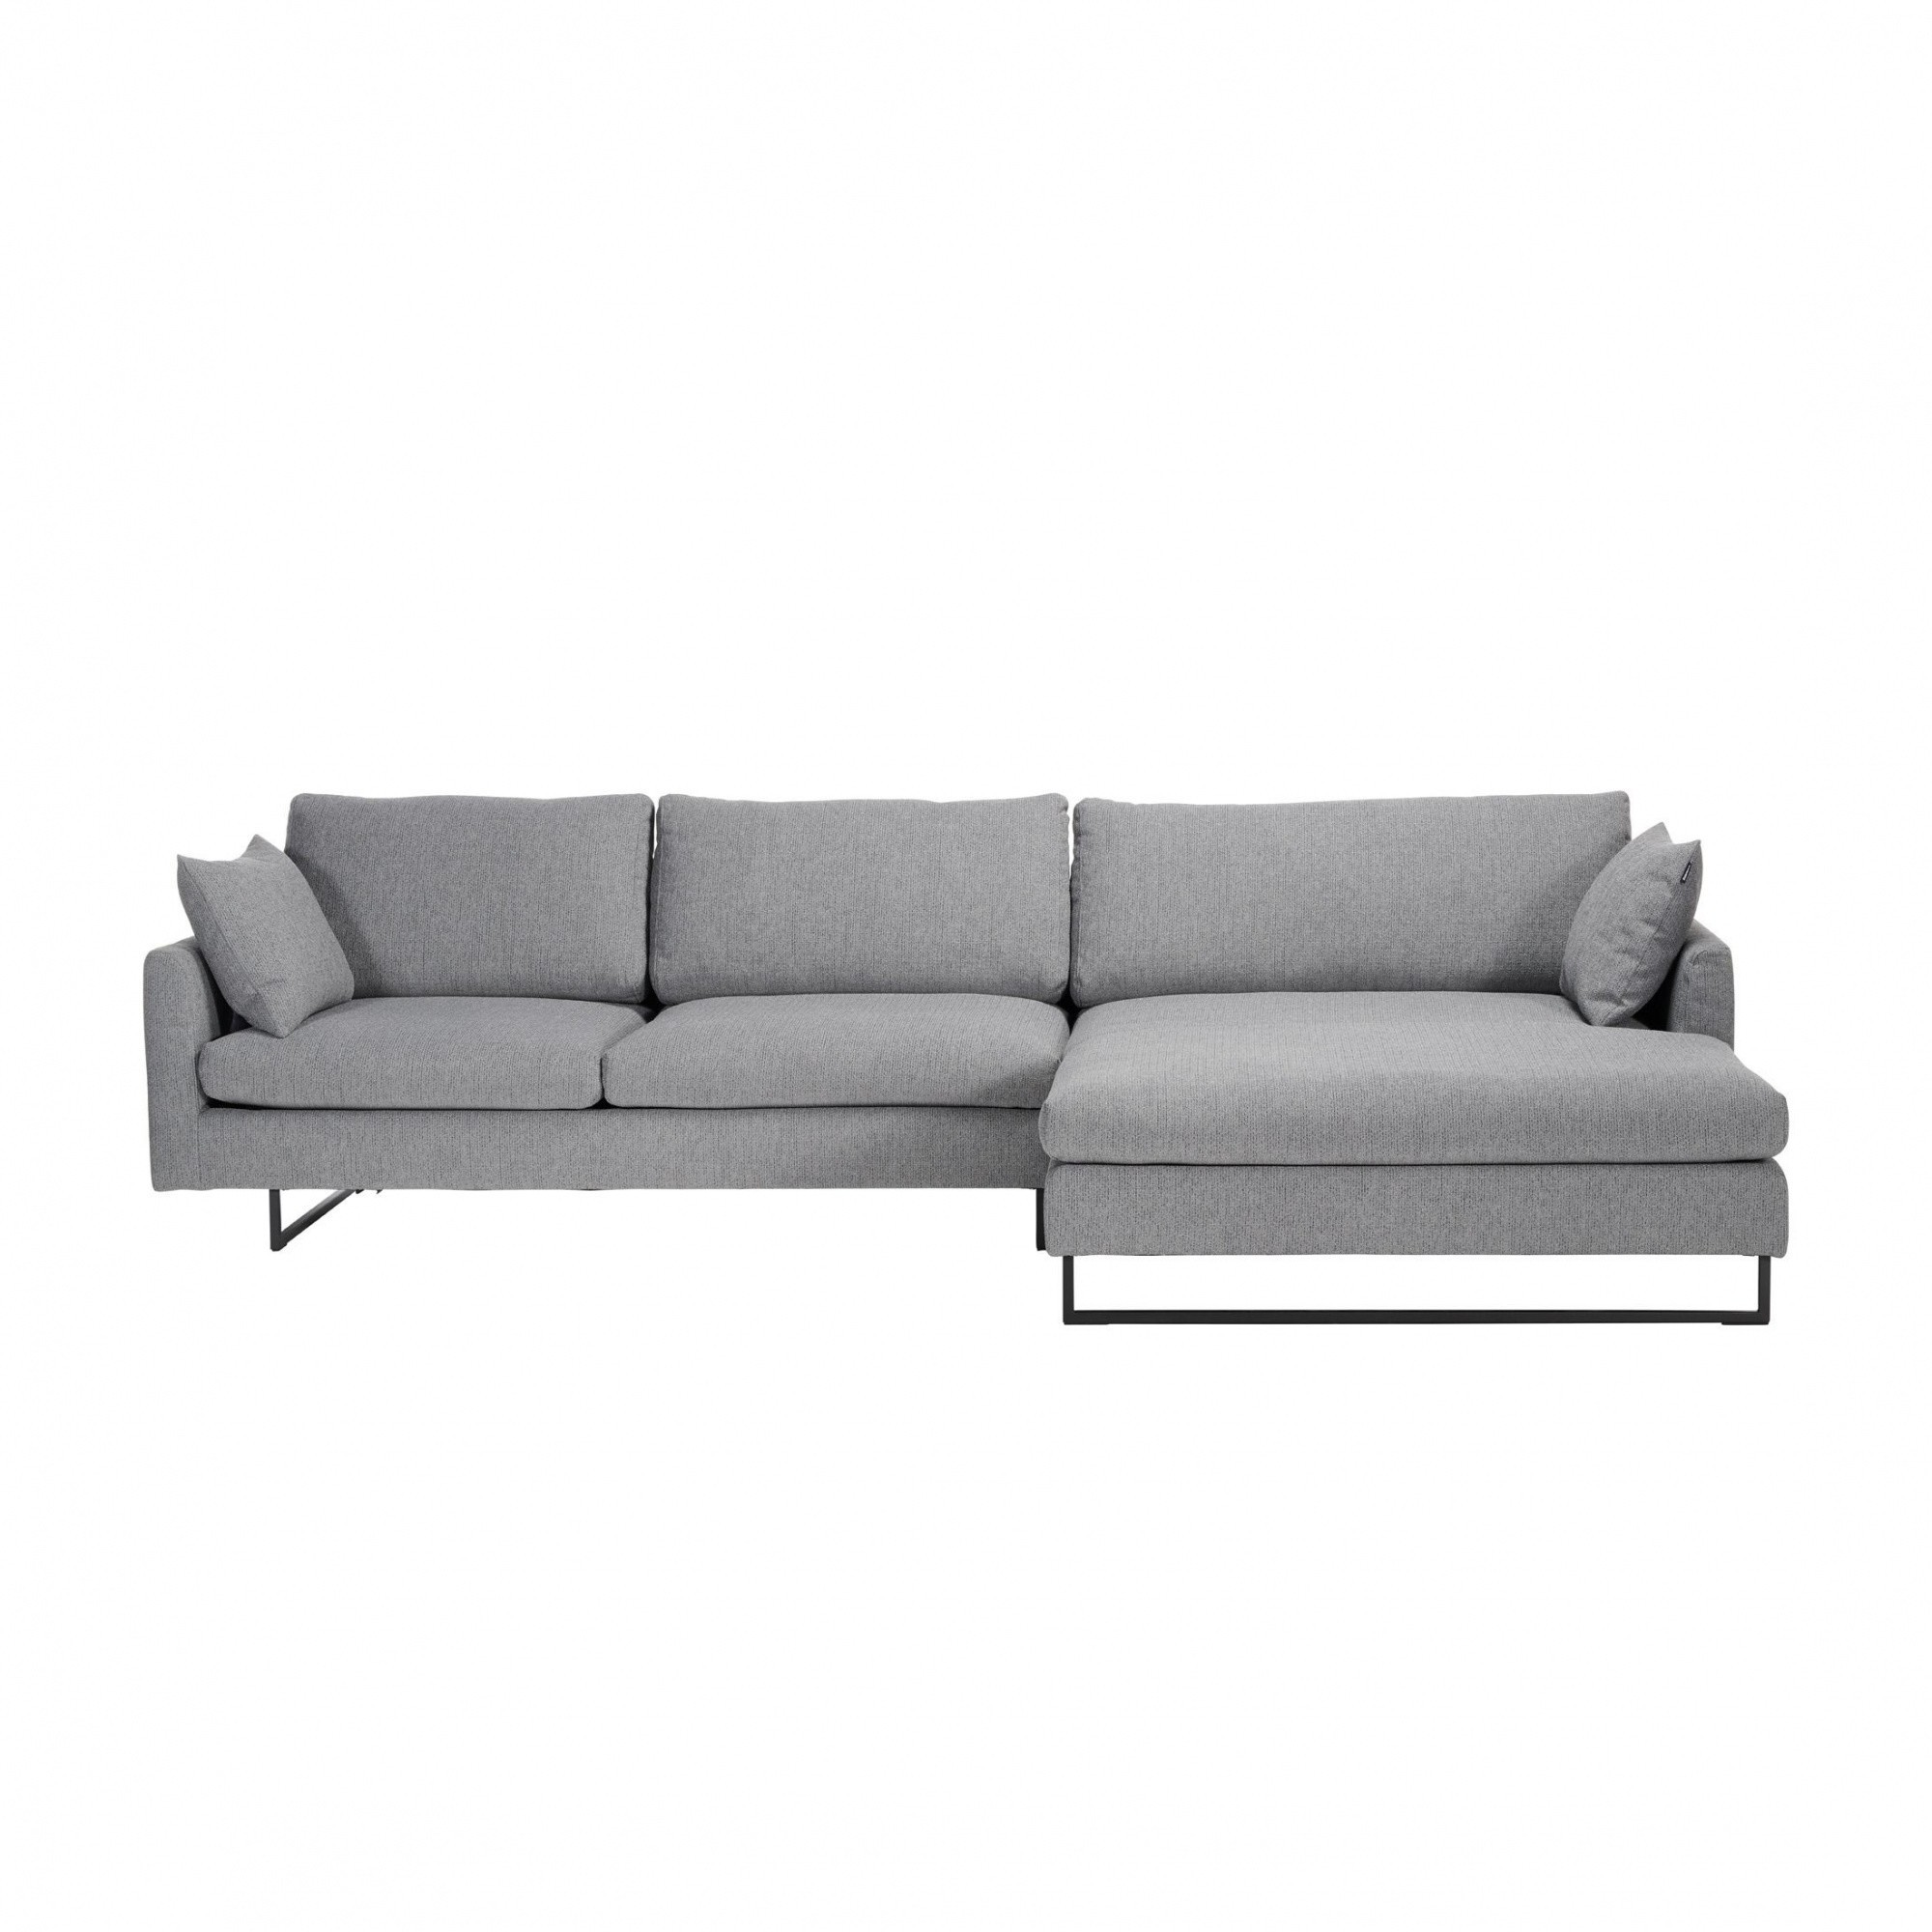 Rolf Benz Freistil Sofa